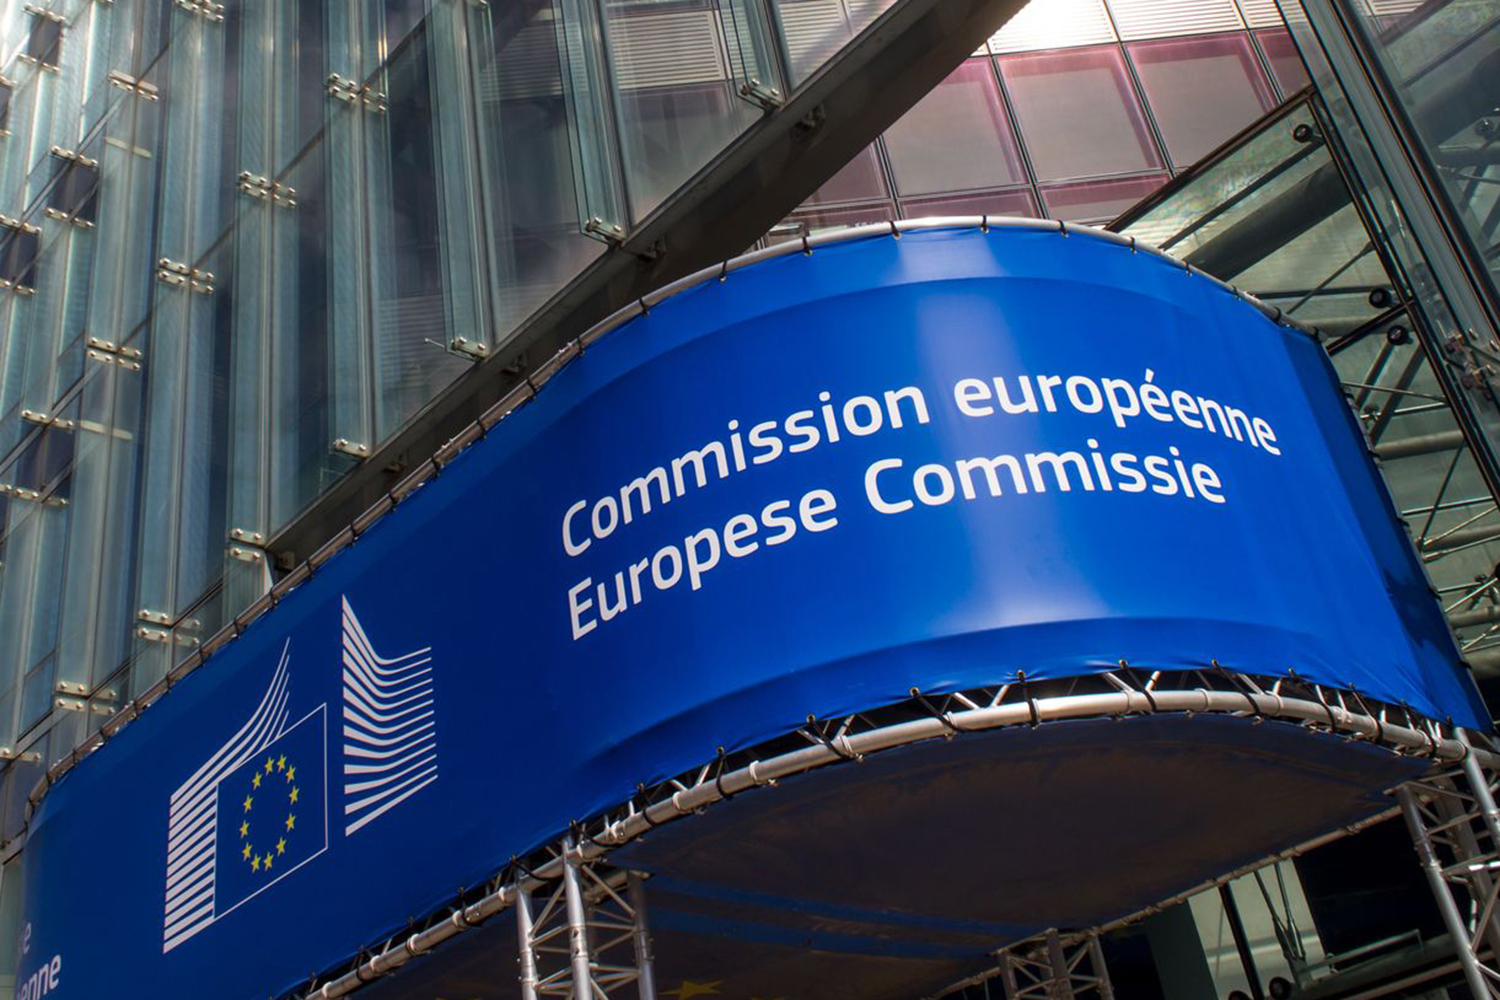 The EC, Venice Commission, the upcoming CVM report and the Romanian persistence